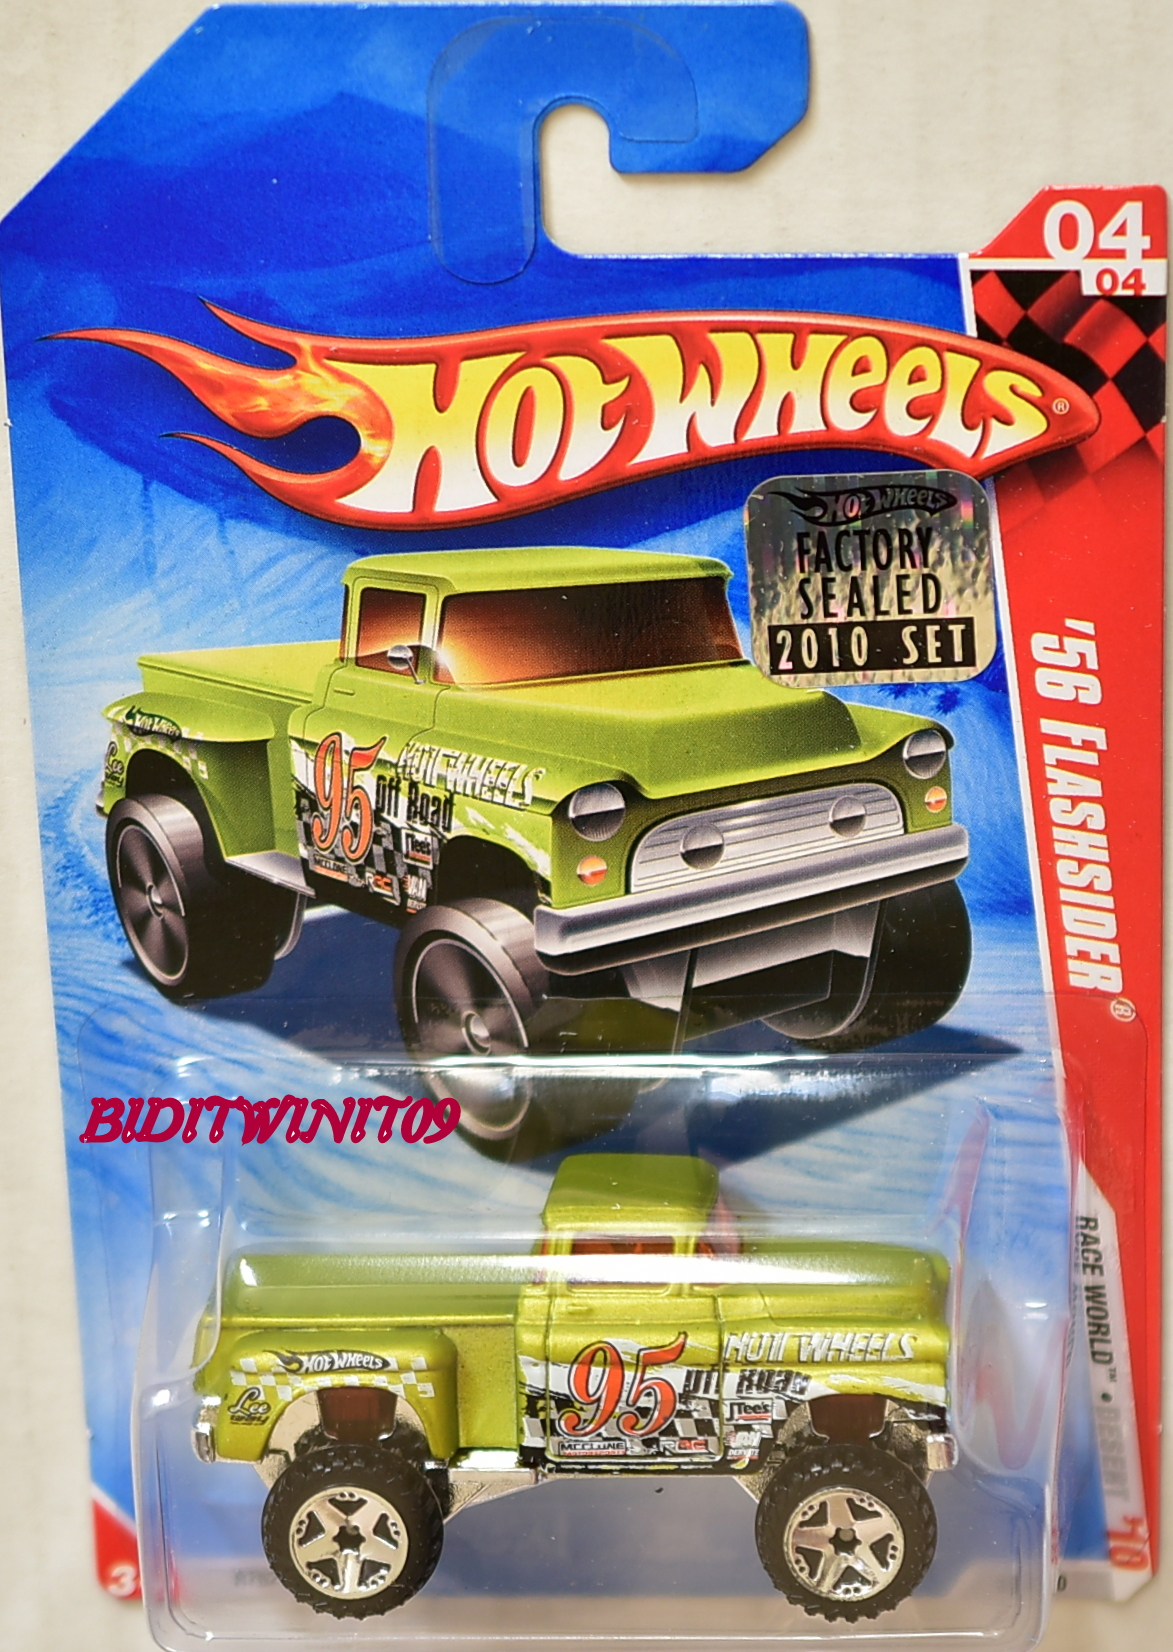 HOT WHEELS 2010 RACE WORLD '56 FLASHSIDER #04/04 FACTORY SEALED E+